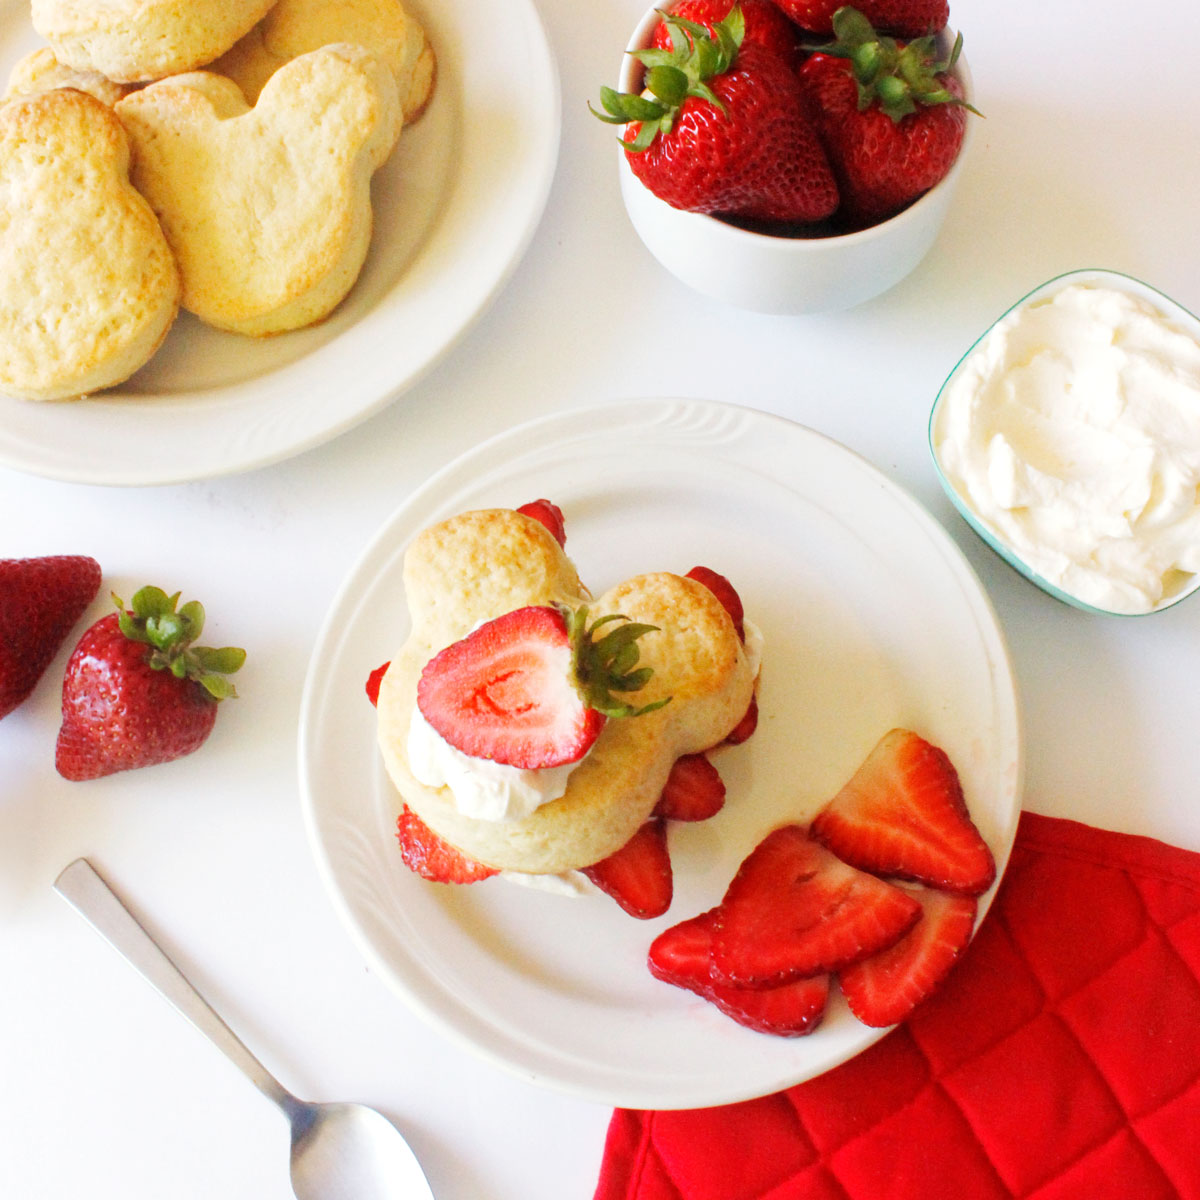 Mickey Strawberry Shortcake Recipe! Make your own! #DisneyFamily 8